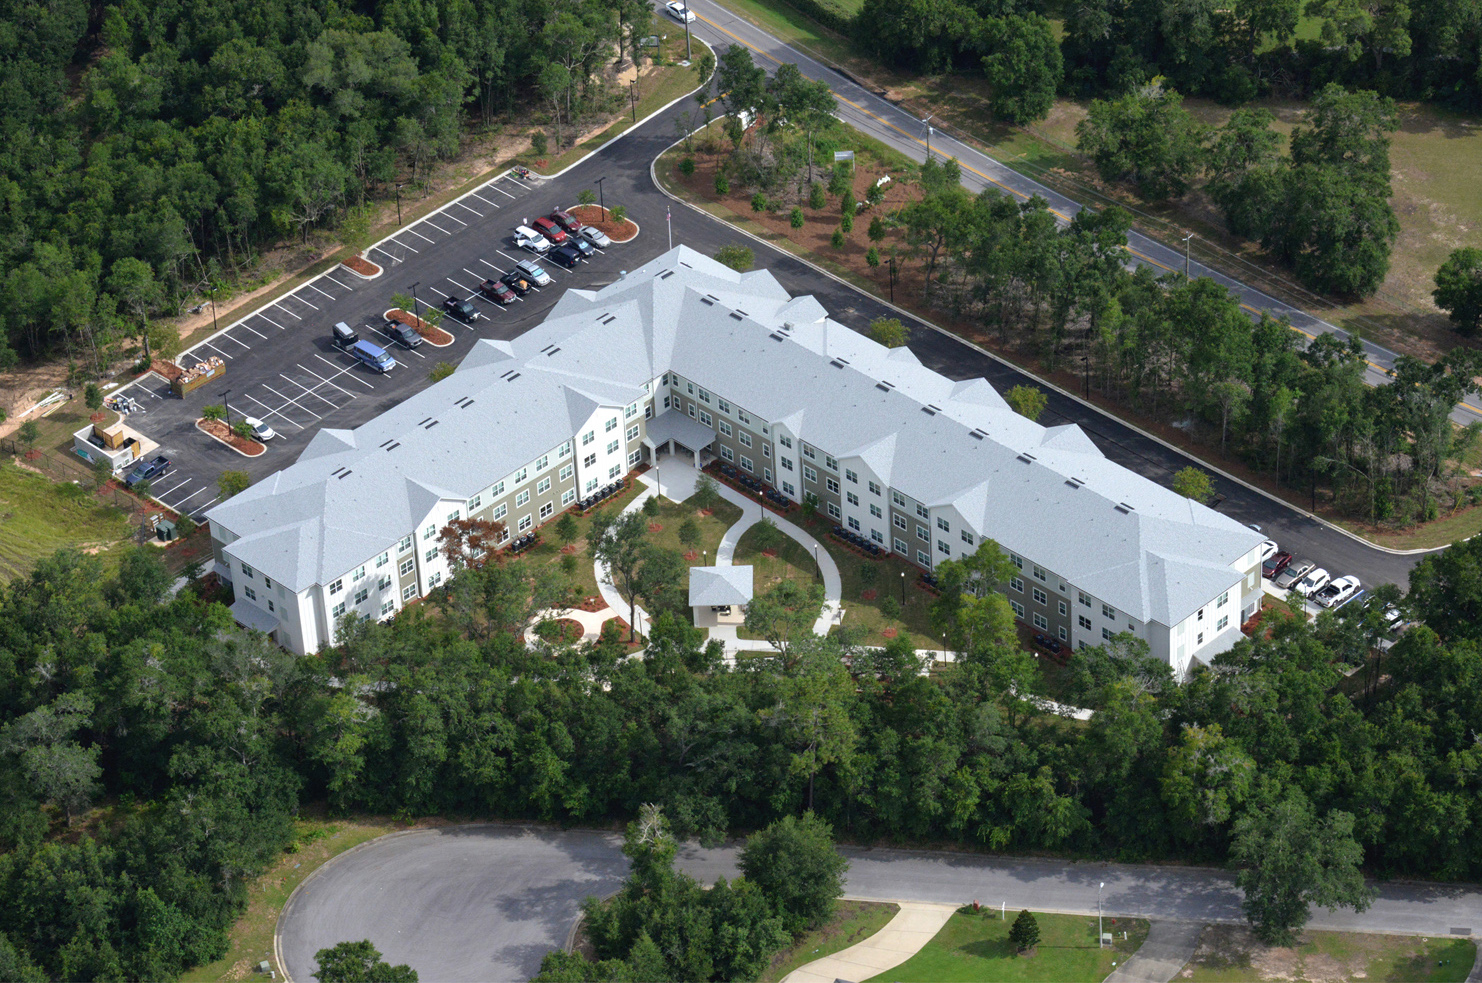 Multi story apartment complex aerial view